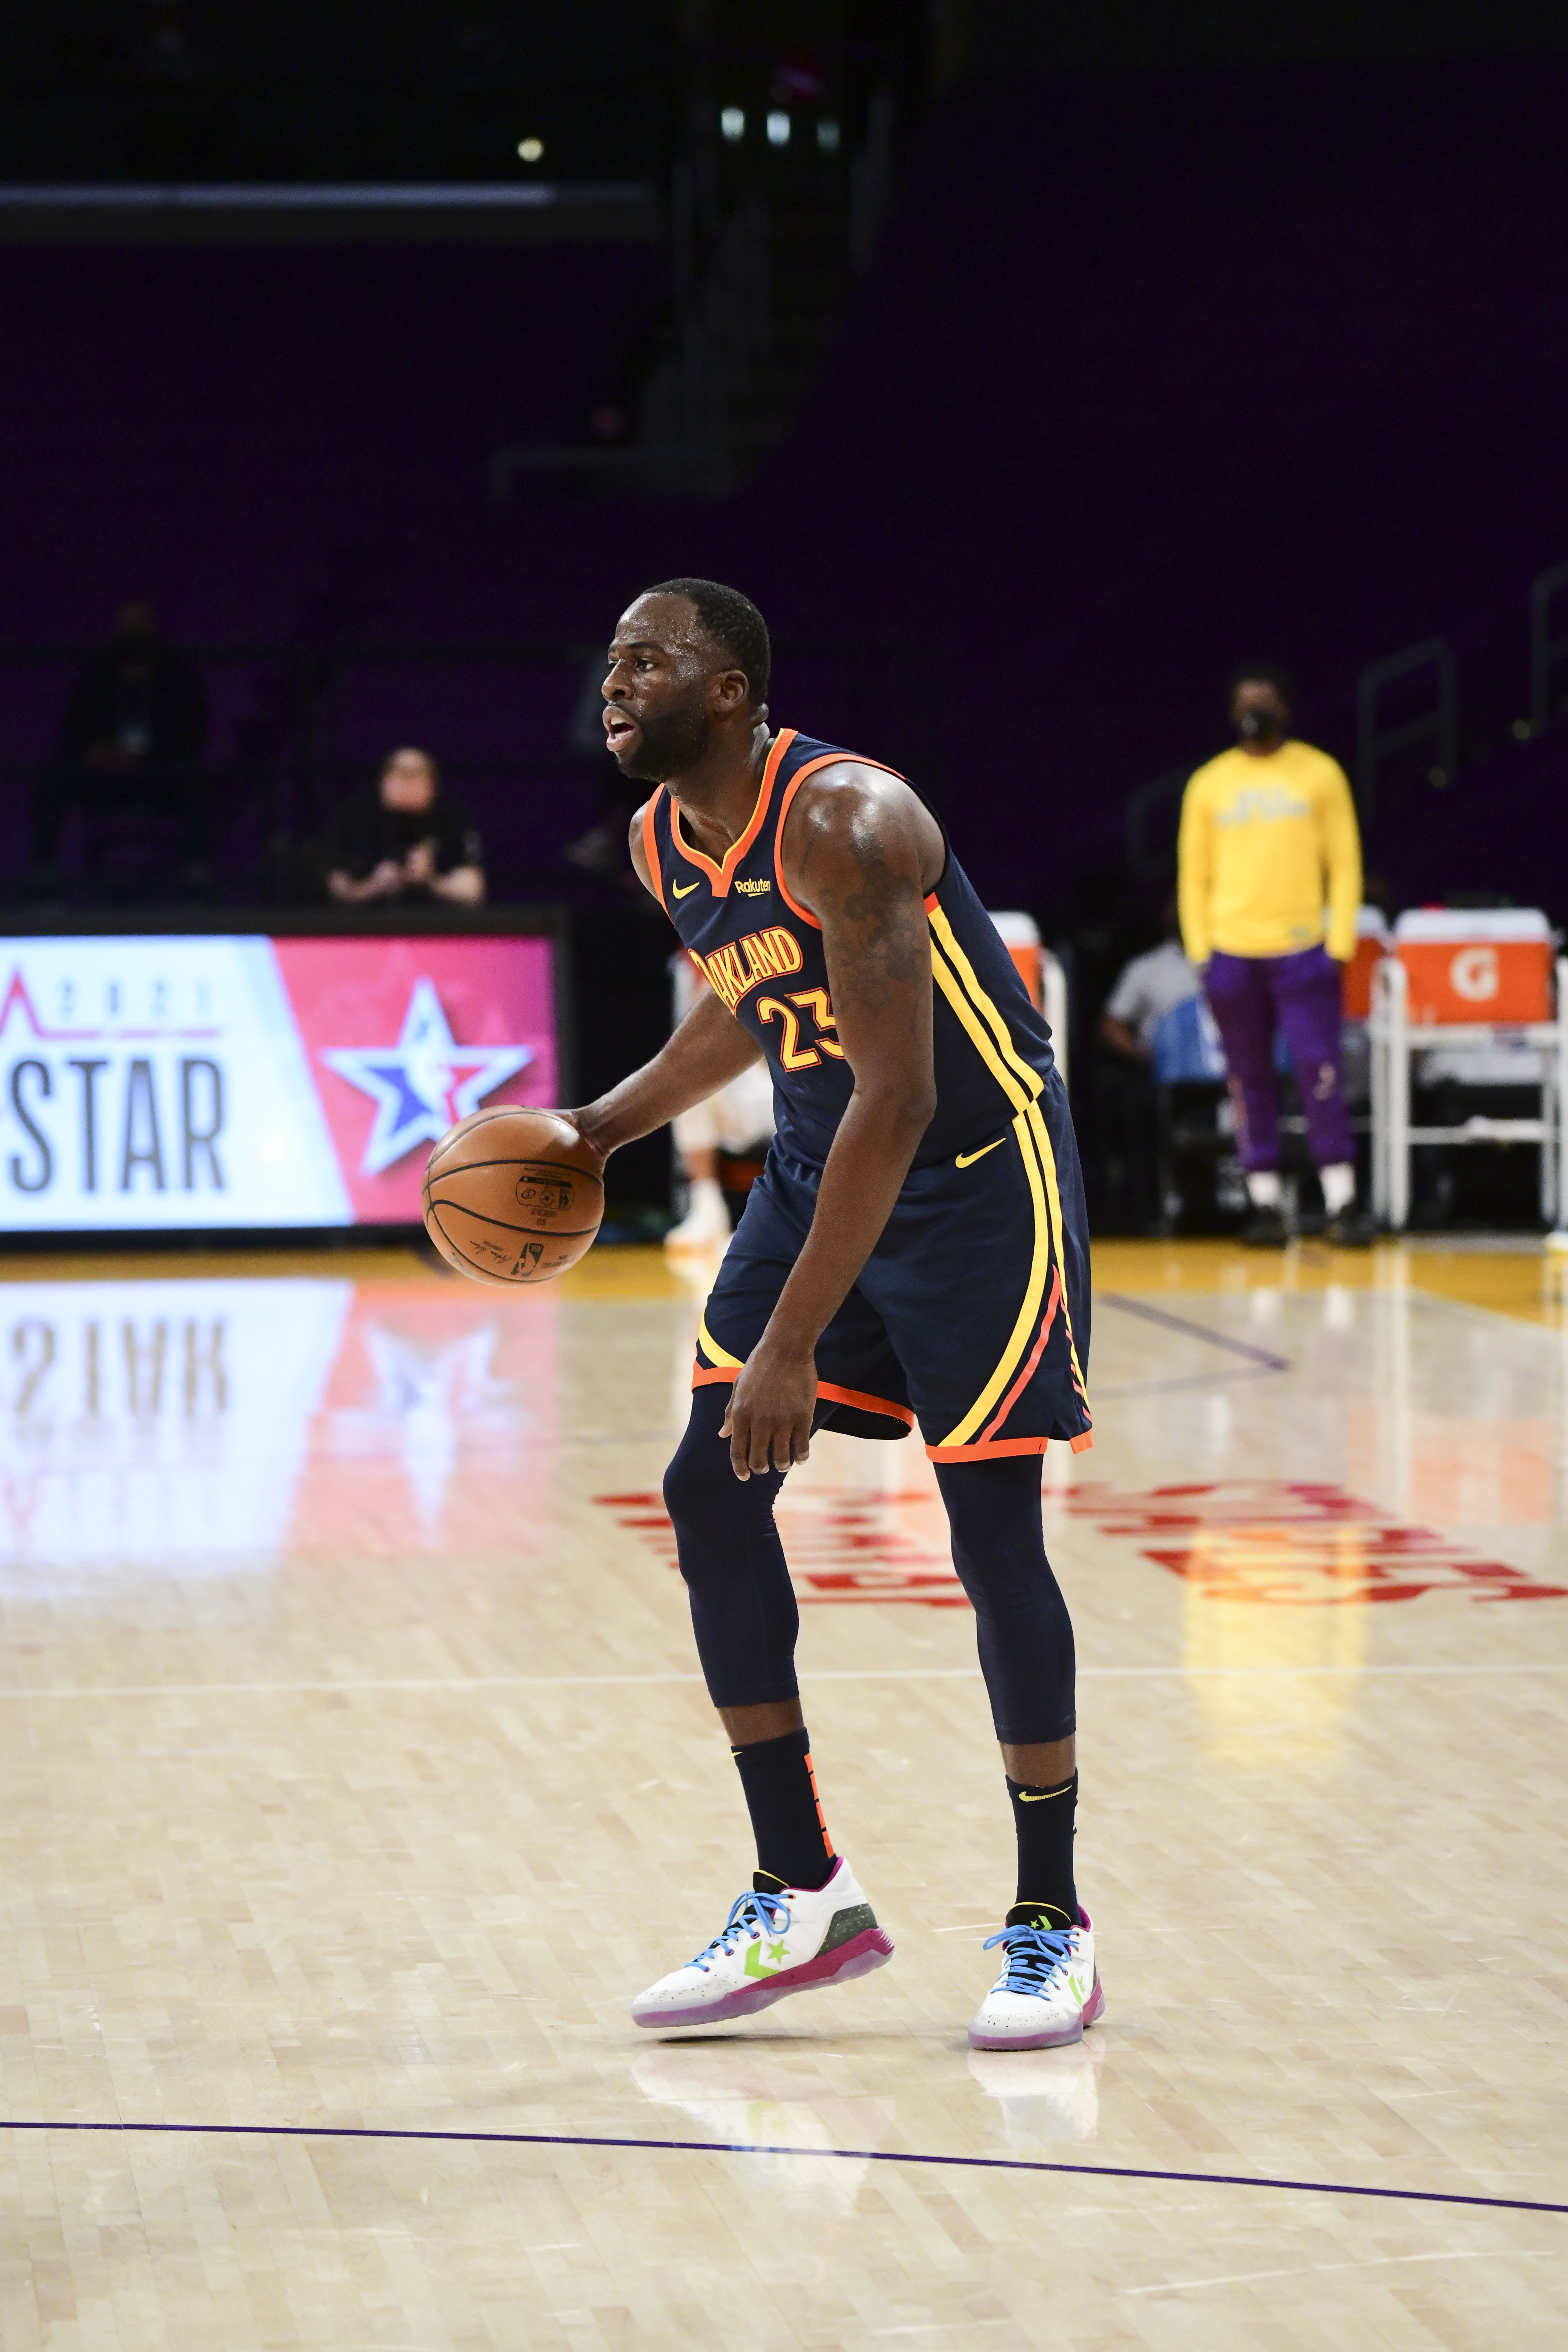 Draymond Green of the Golden State Warriors dribbles during the game against the Los Angeles Lakers on February 28, 2021 at STAPLES Center in Los Angeles, California.